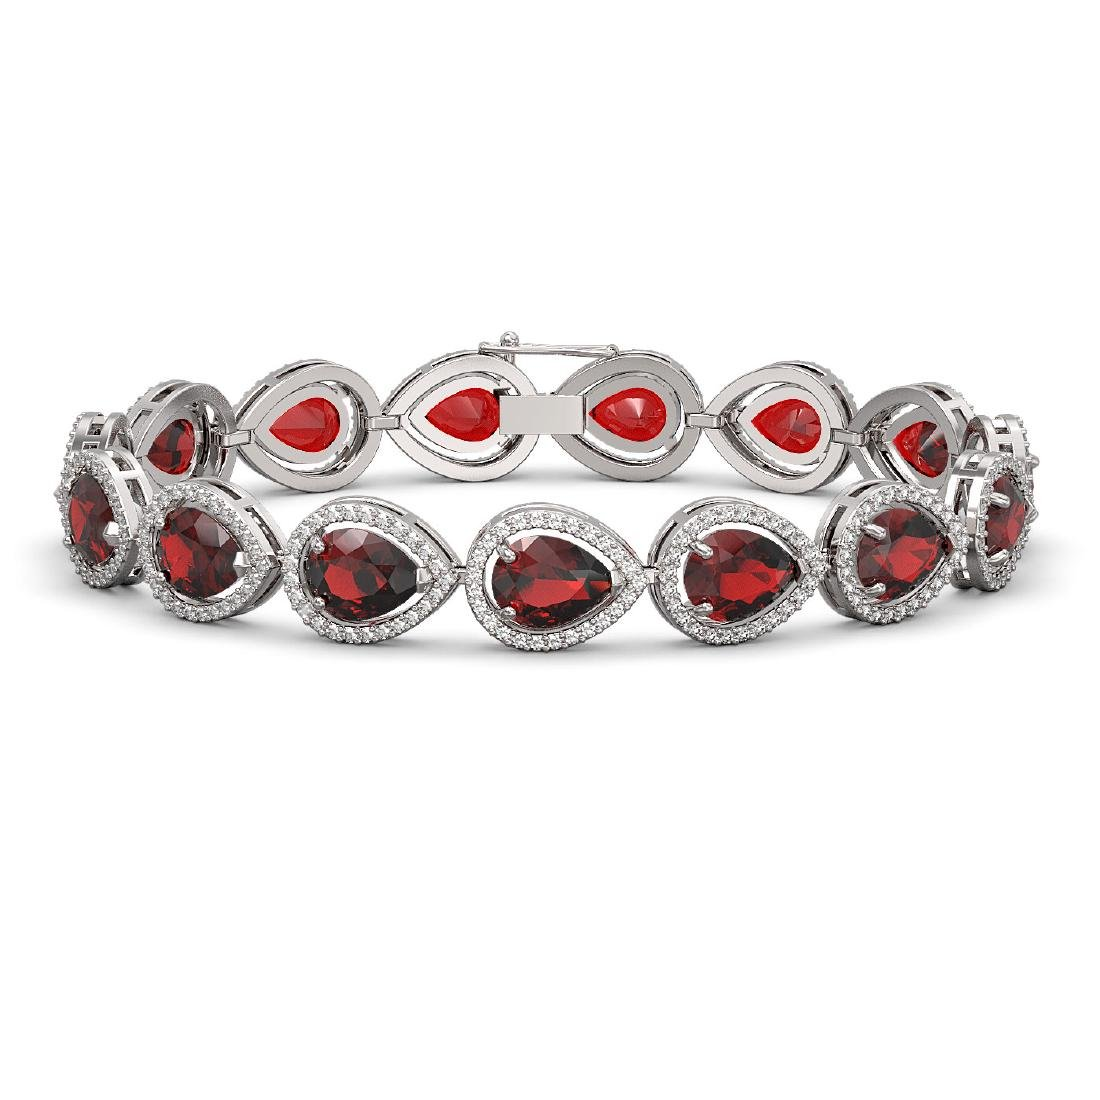 17.45 CTW Garnet & Diamond Halo Bracelet 10K White Gold